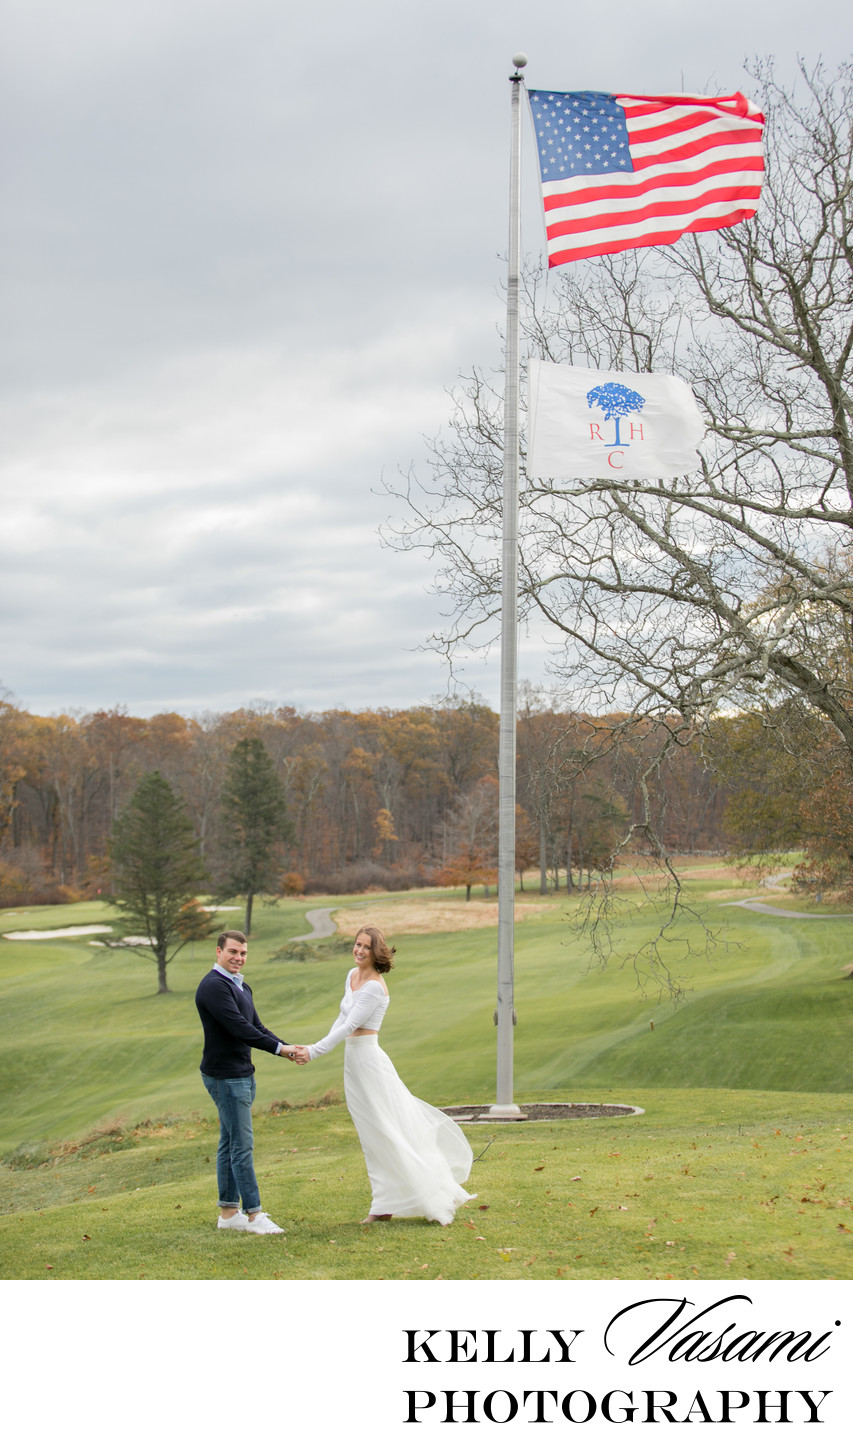 Windy Golf Course Engagement Photos in Greenwich